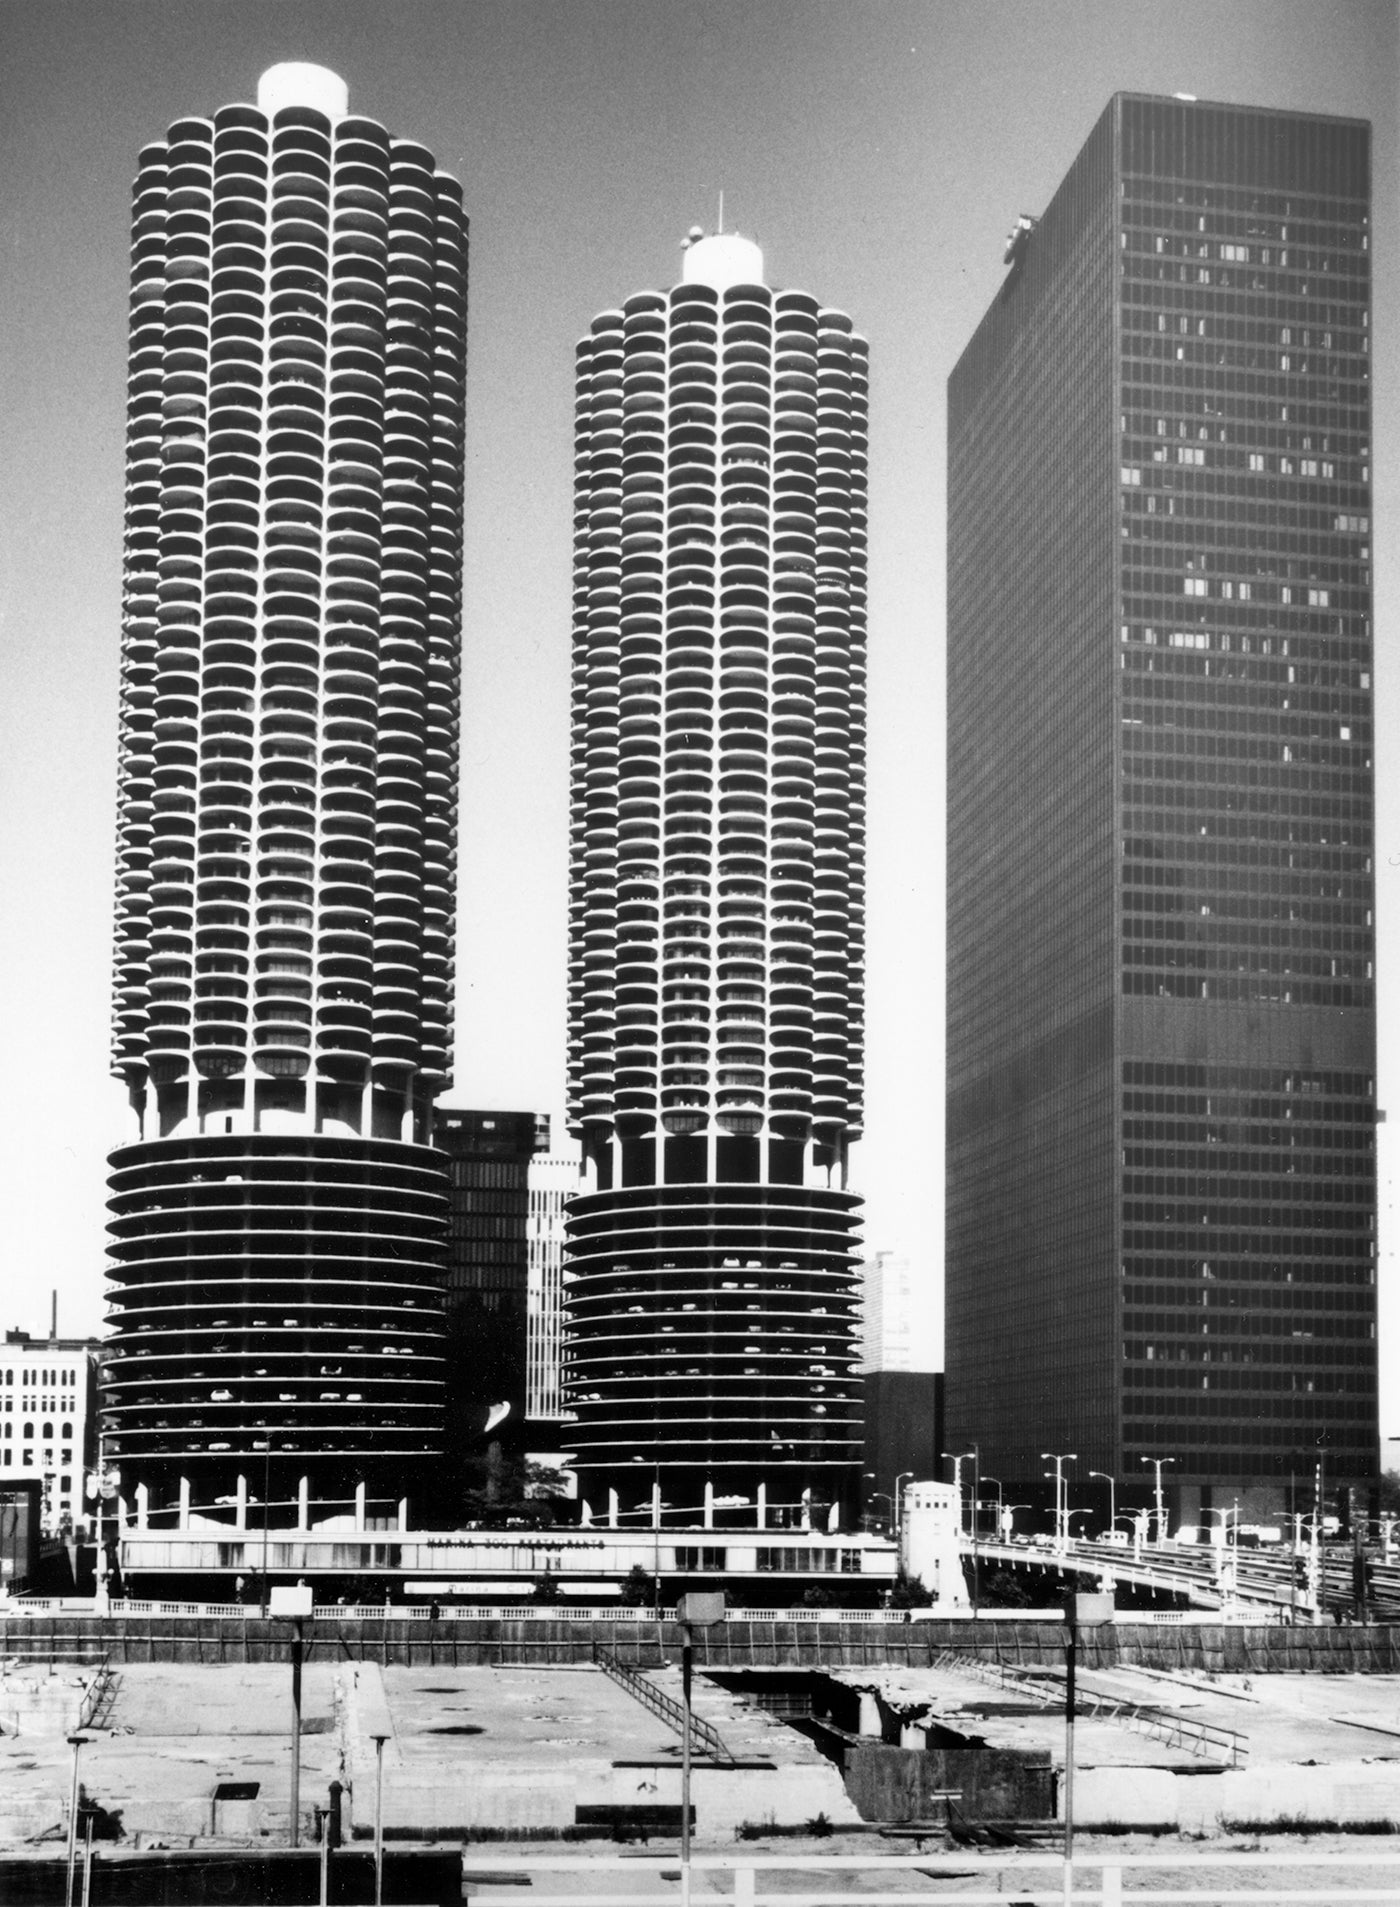 Beauty and Brutalism, The Life of Bertrand Goldberg